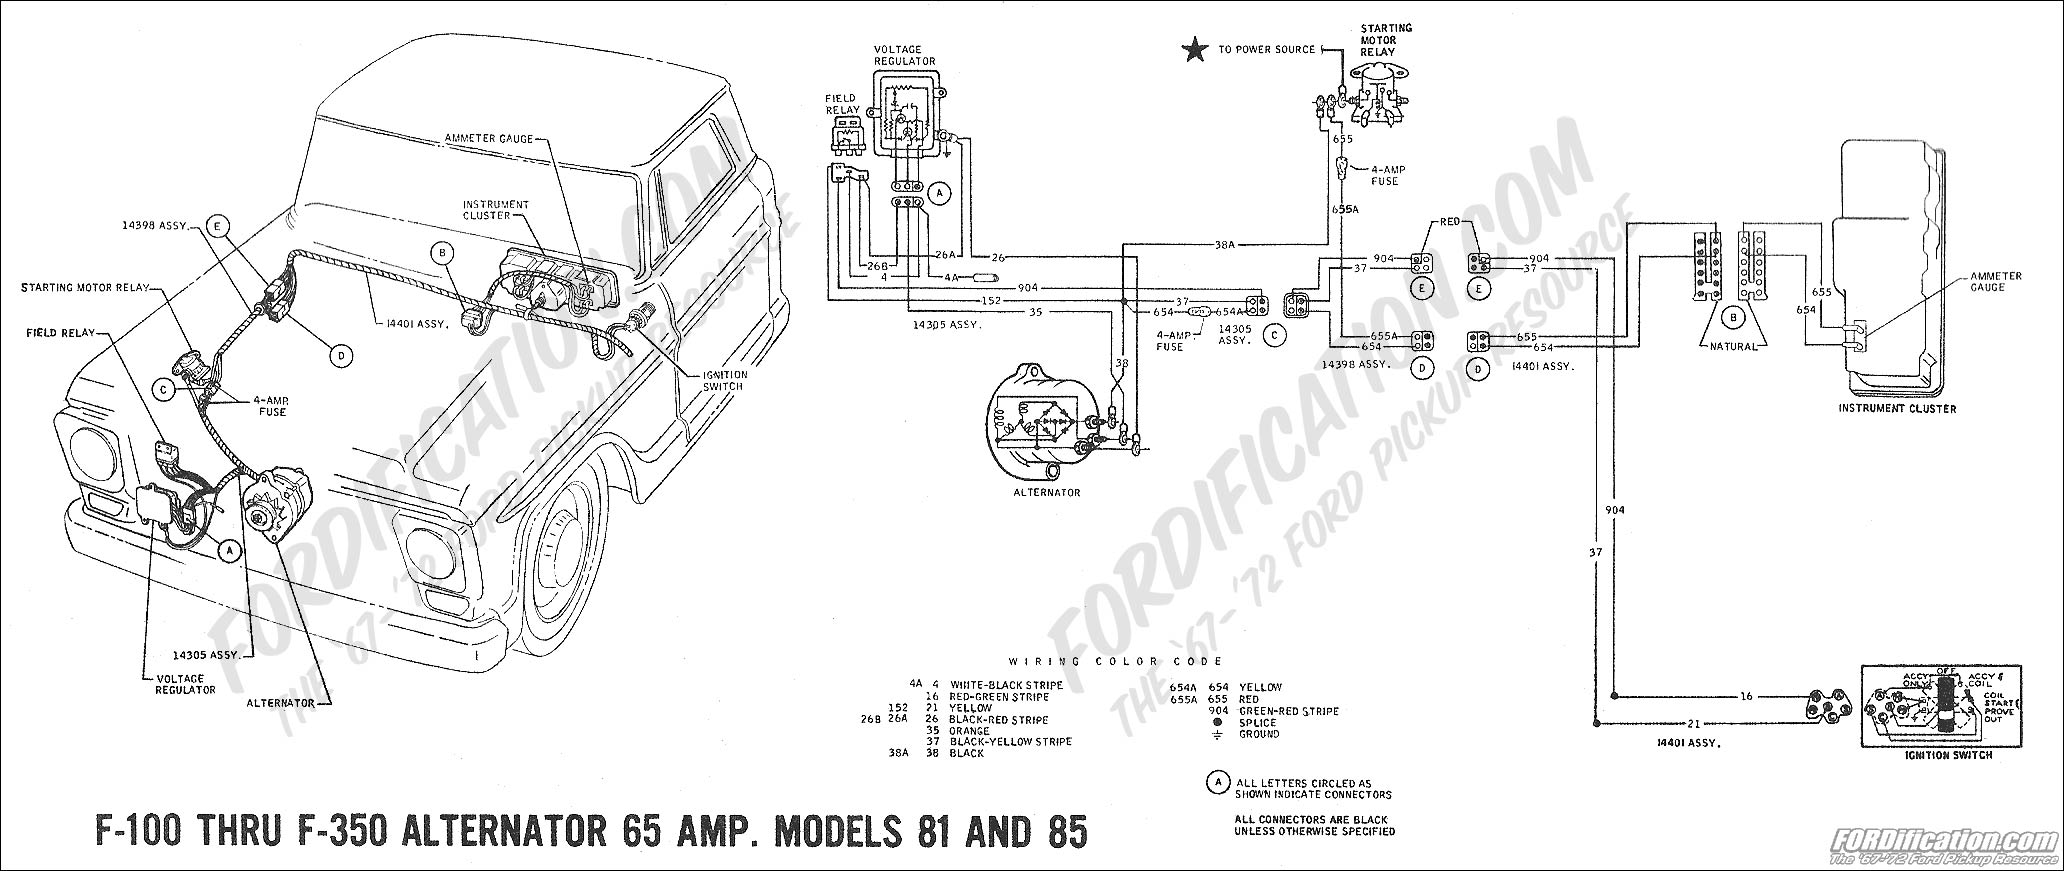 Ford Truck Technical Drawings And Schematics Section H Wiring 2003 F 250 Interior Lights Diagram 1969 100 Thru 350 Alternator 65 Amp Models 81 85